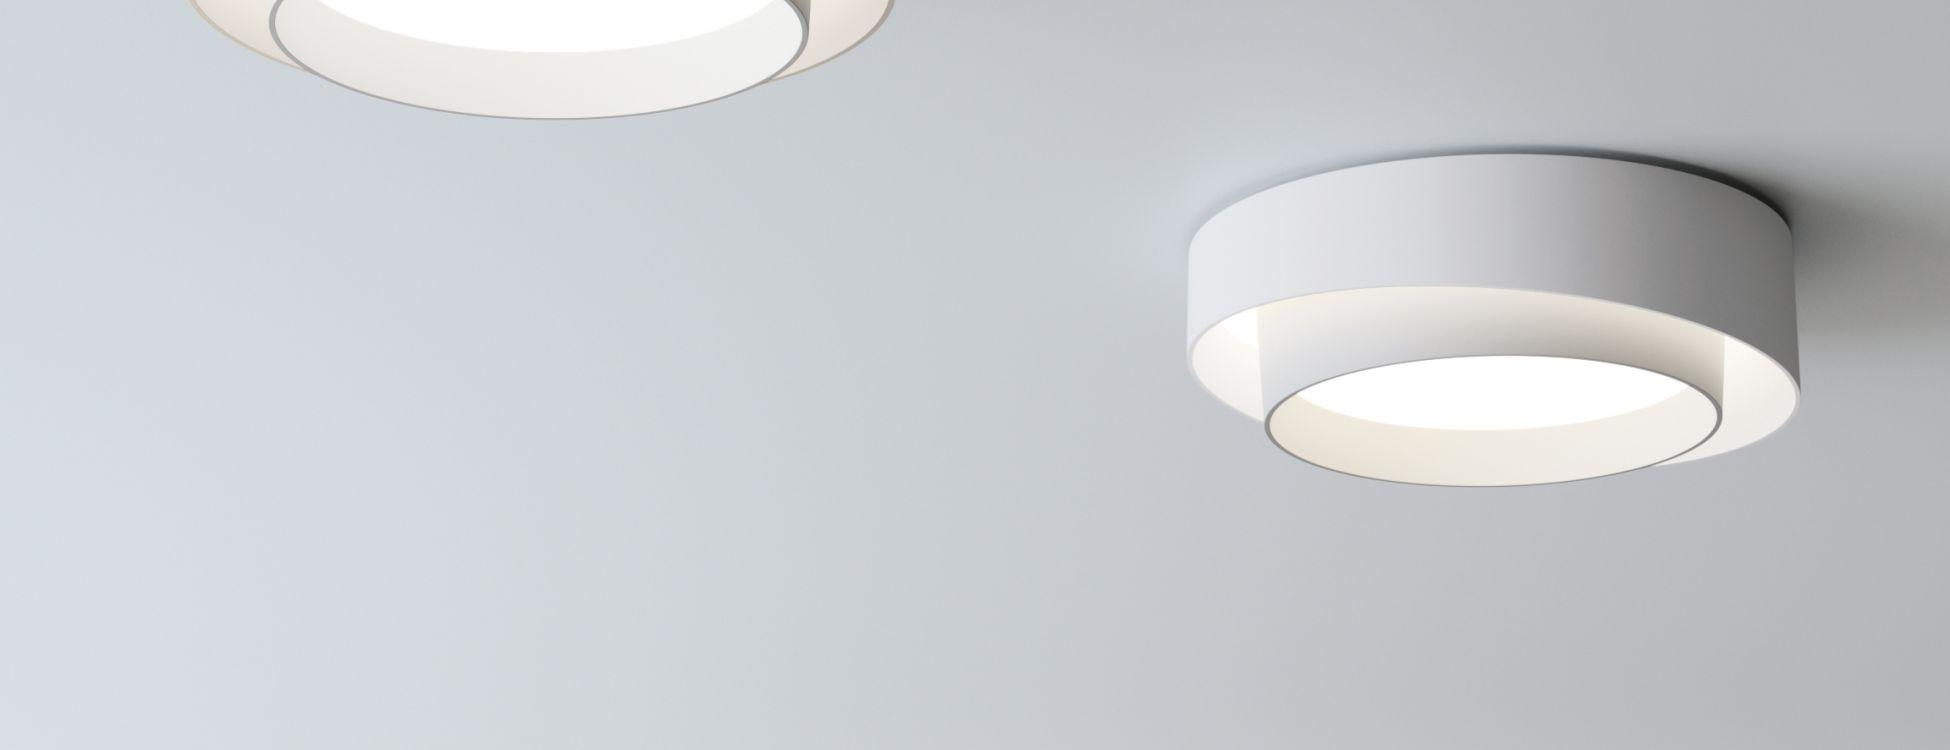 Centric soffito ø32cm (6cm) 1xLED 15,2W + 2xLED 4W dimmable - Laccato bianco opaco